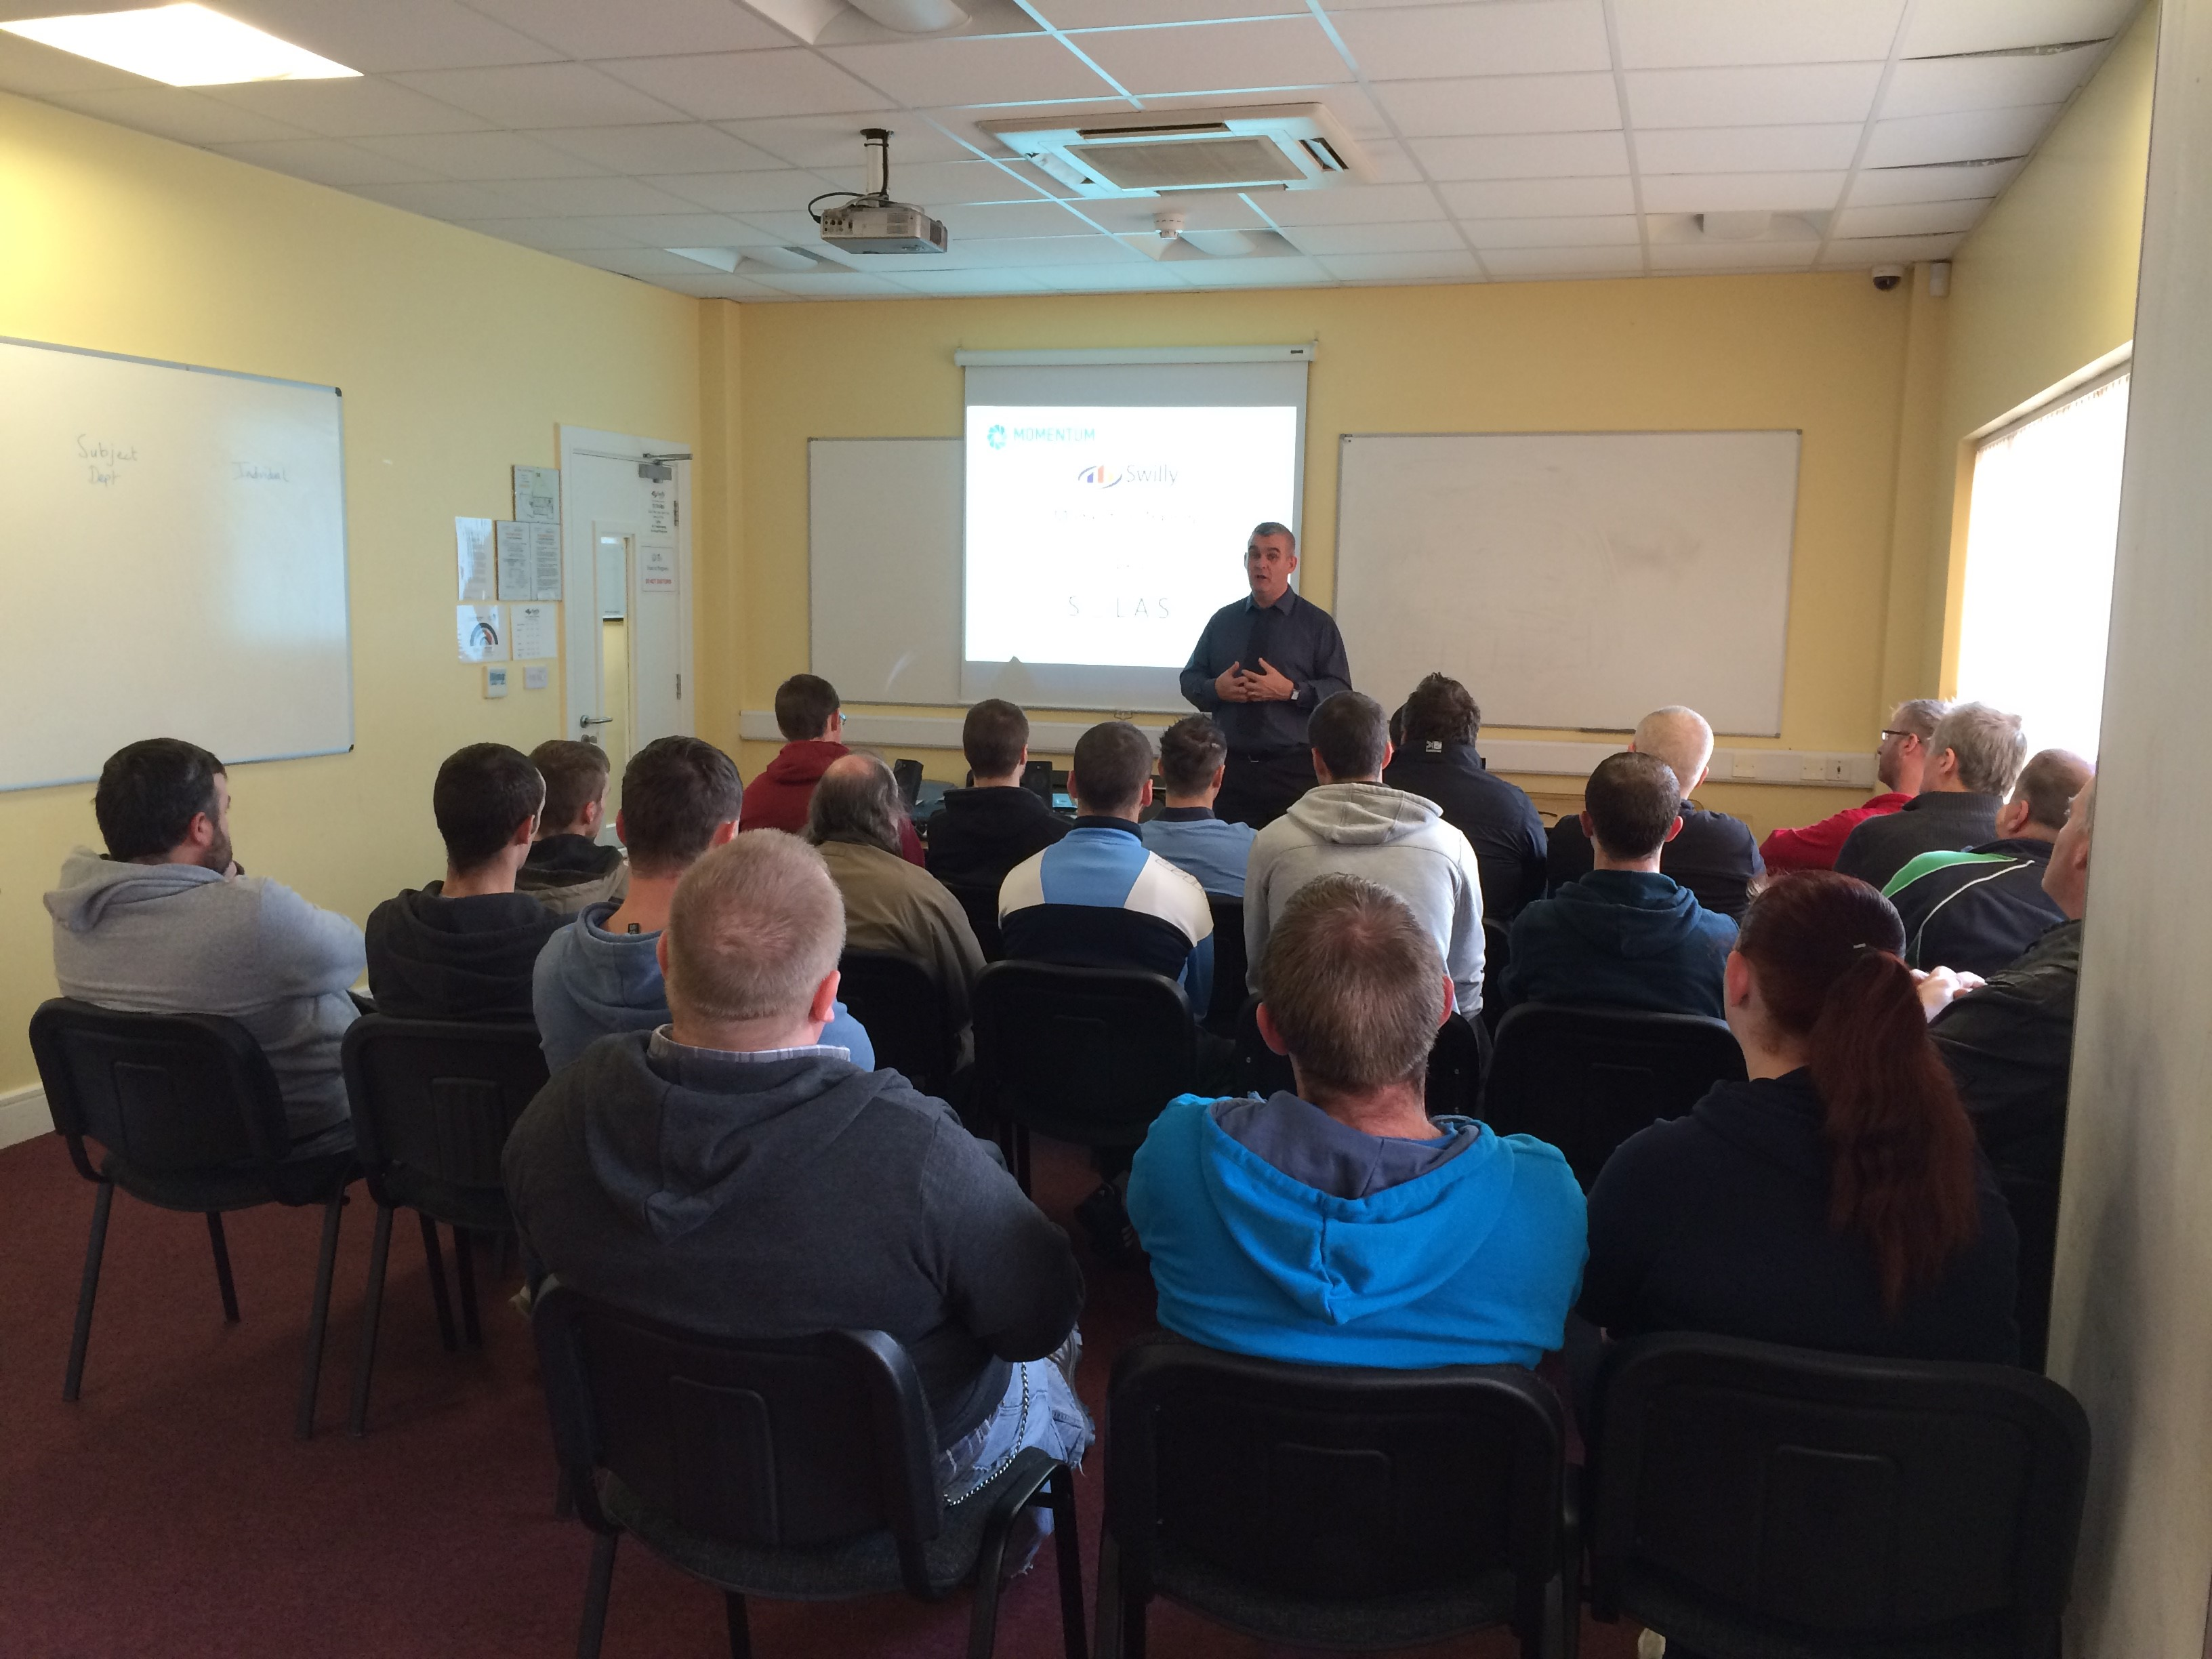 Gerard Lynch presents information on the Driving and Transport Management Courses.